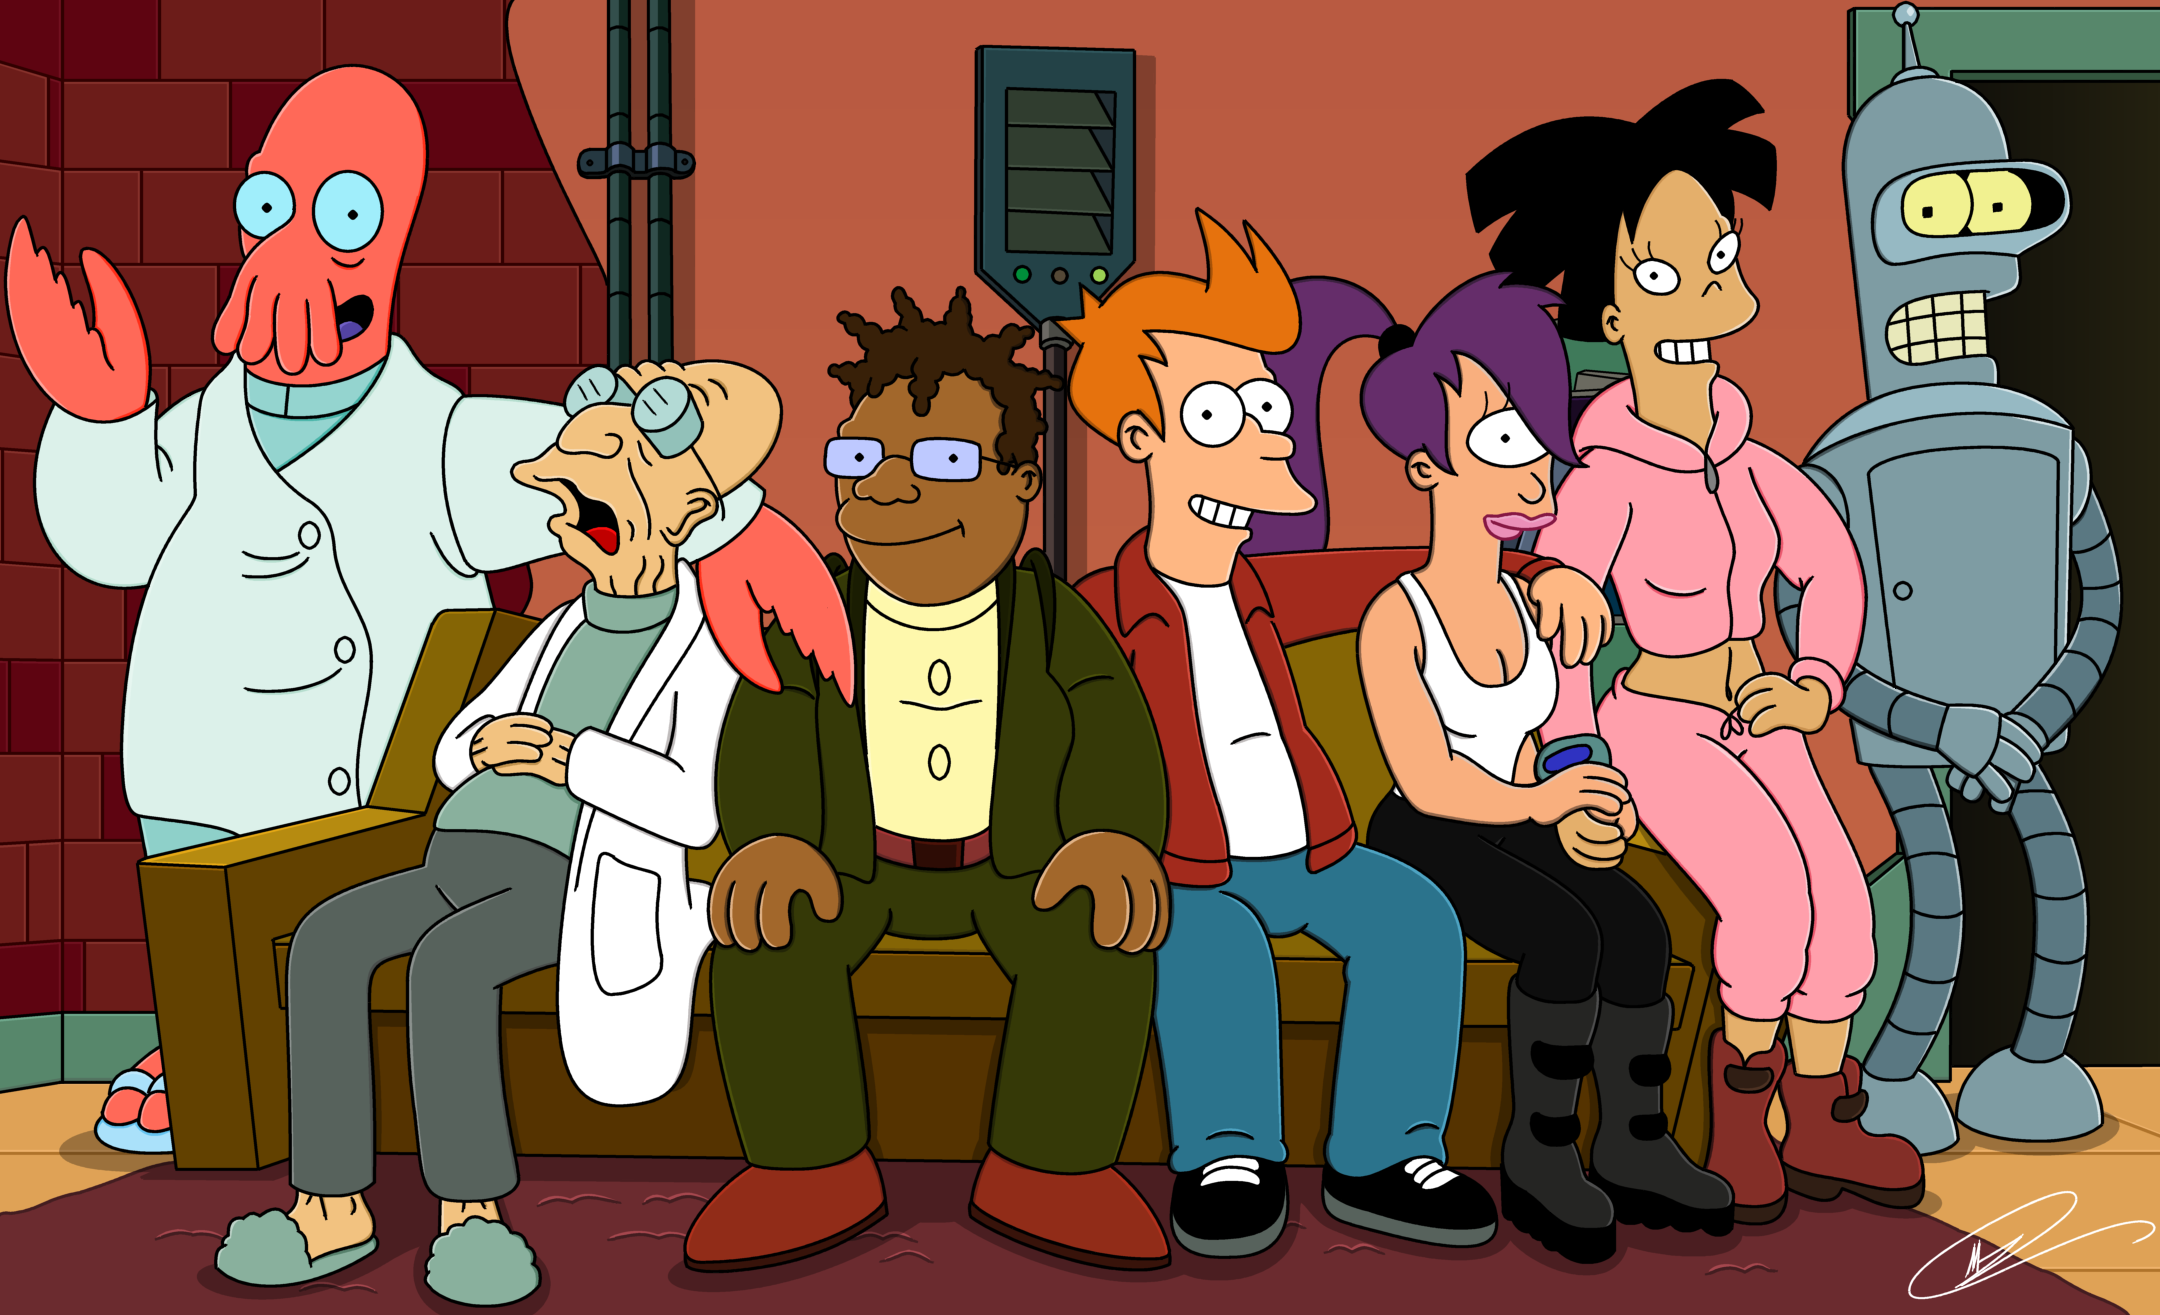 Futurama Season 7 Review A Disappointingly Uninspired Season Leads To An Ultimately Satisfying Conclusion